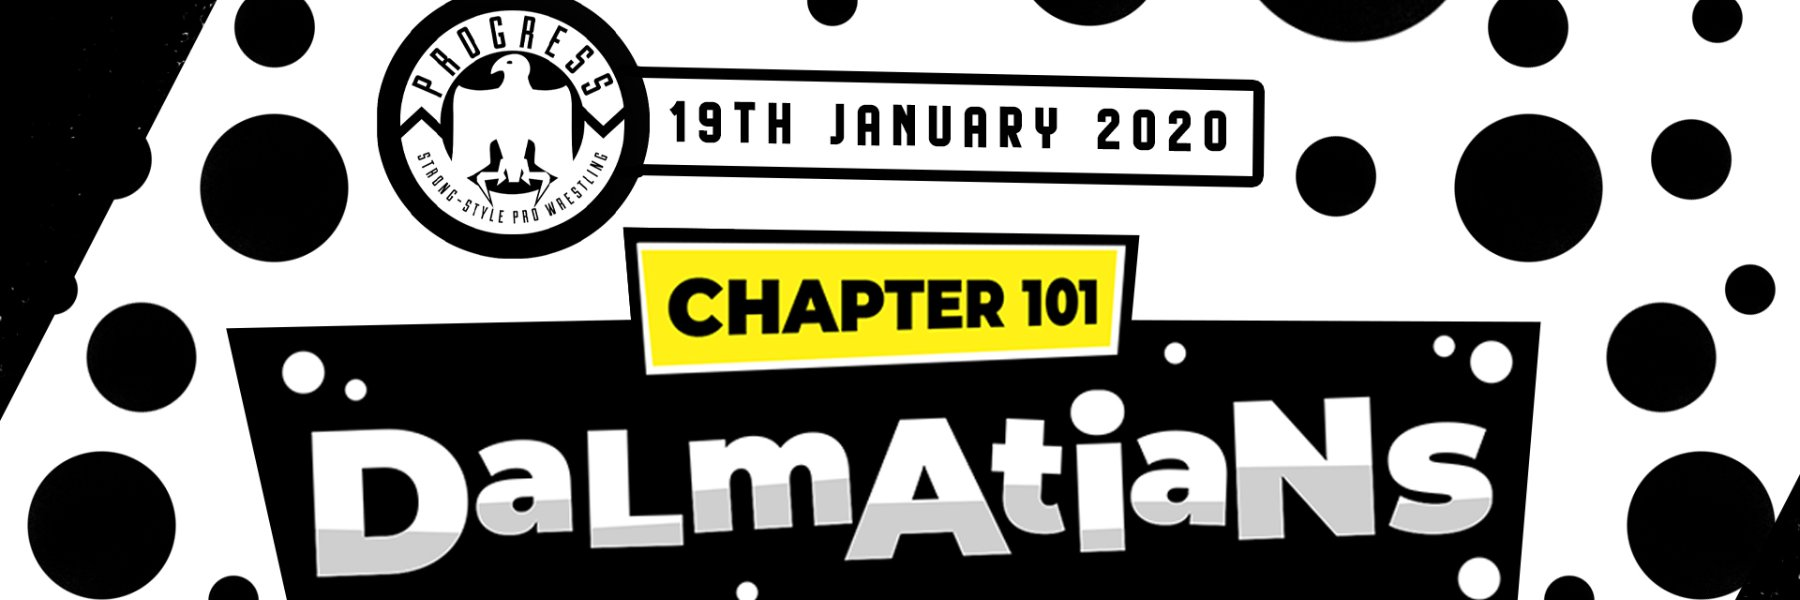 NEW - Chapter 101: Dalmatians